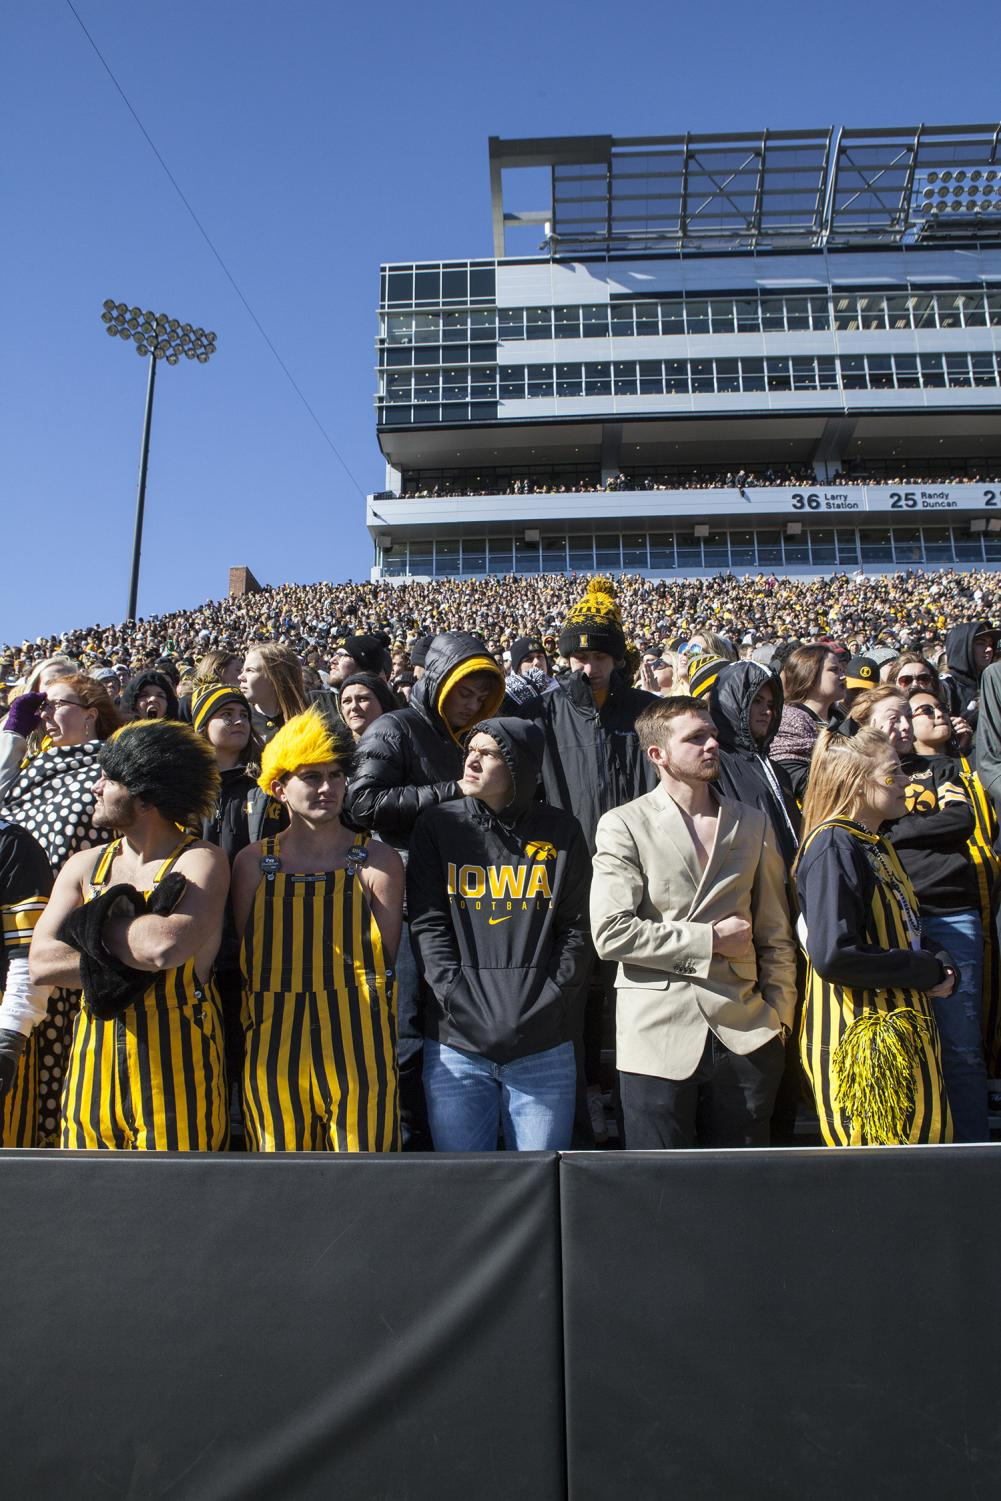 Fans+spectate+during+the+Iowa+vs.+Maryland+game+at+Kinnick+stadium+on+Saturday+Oct.+20%2C+2018.+The+Hawkeyes+defeated+the+Terrapins+23-0.